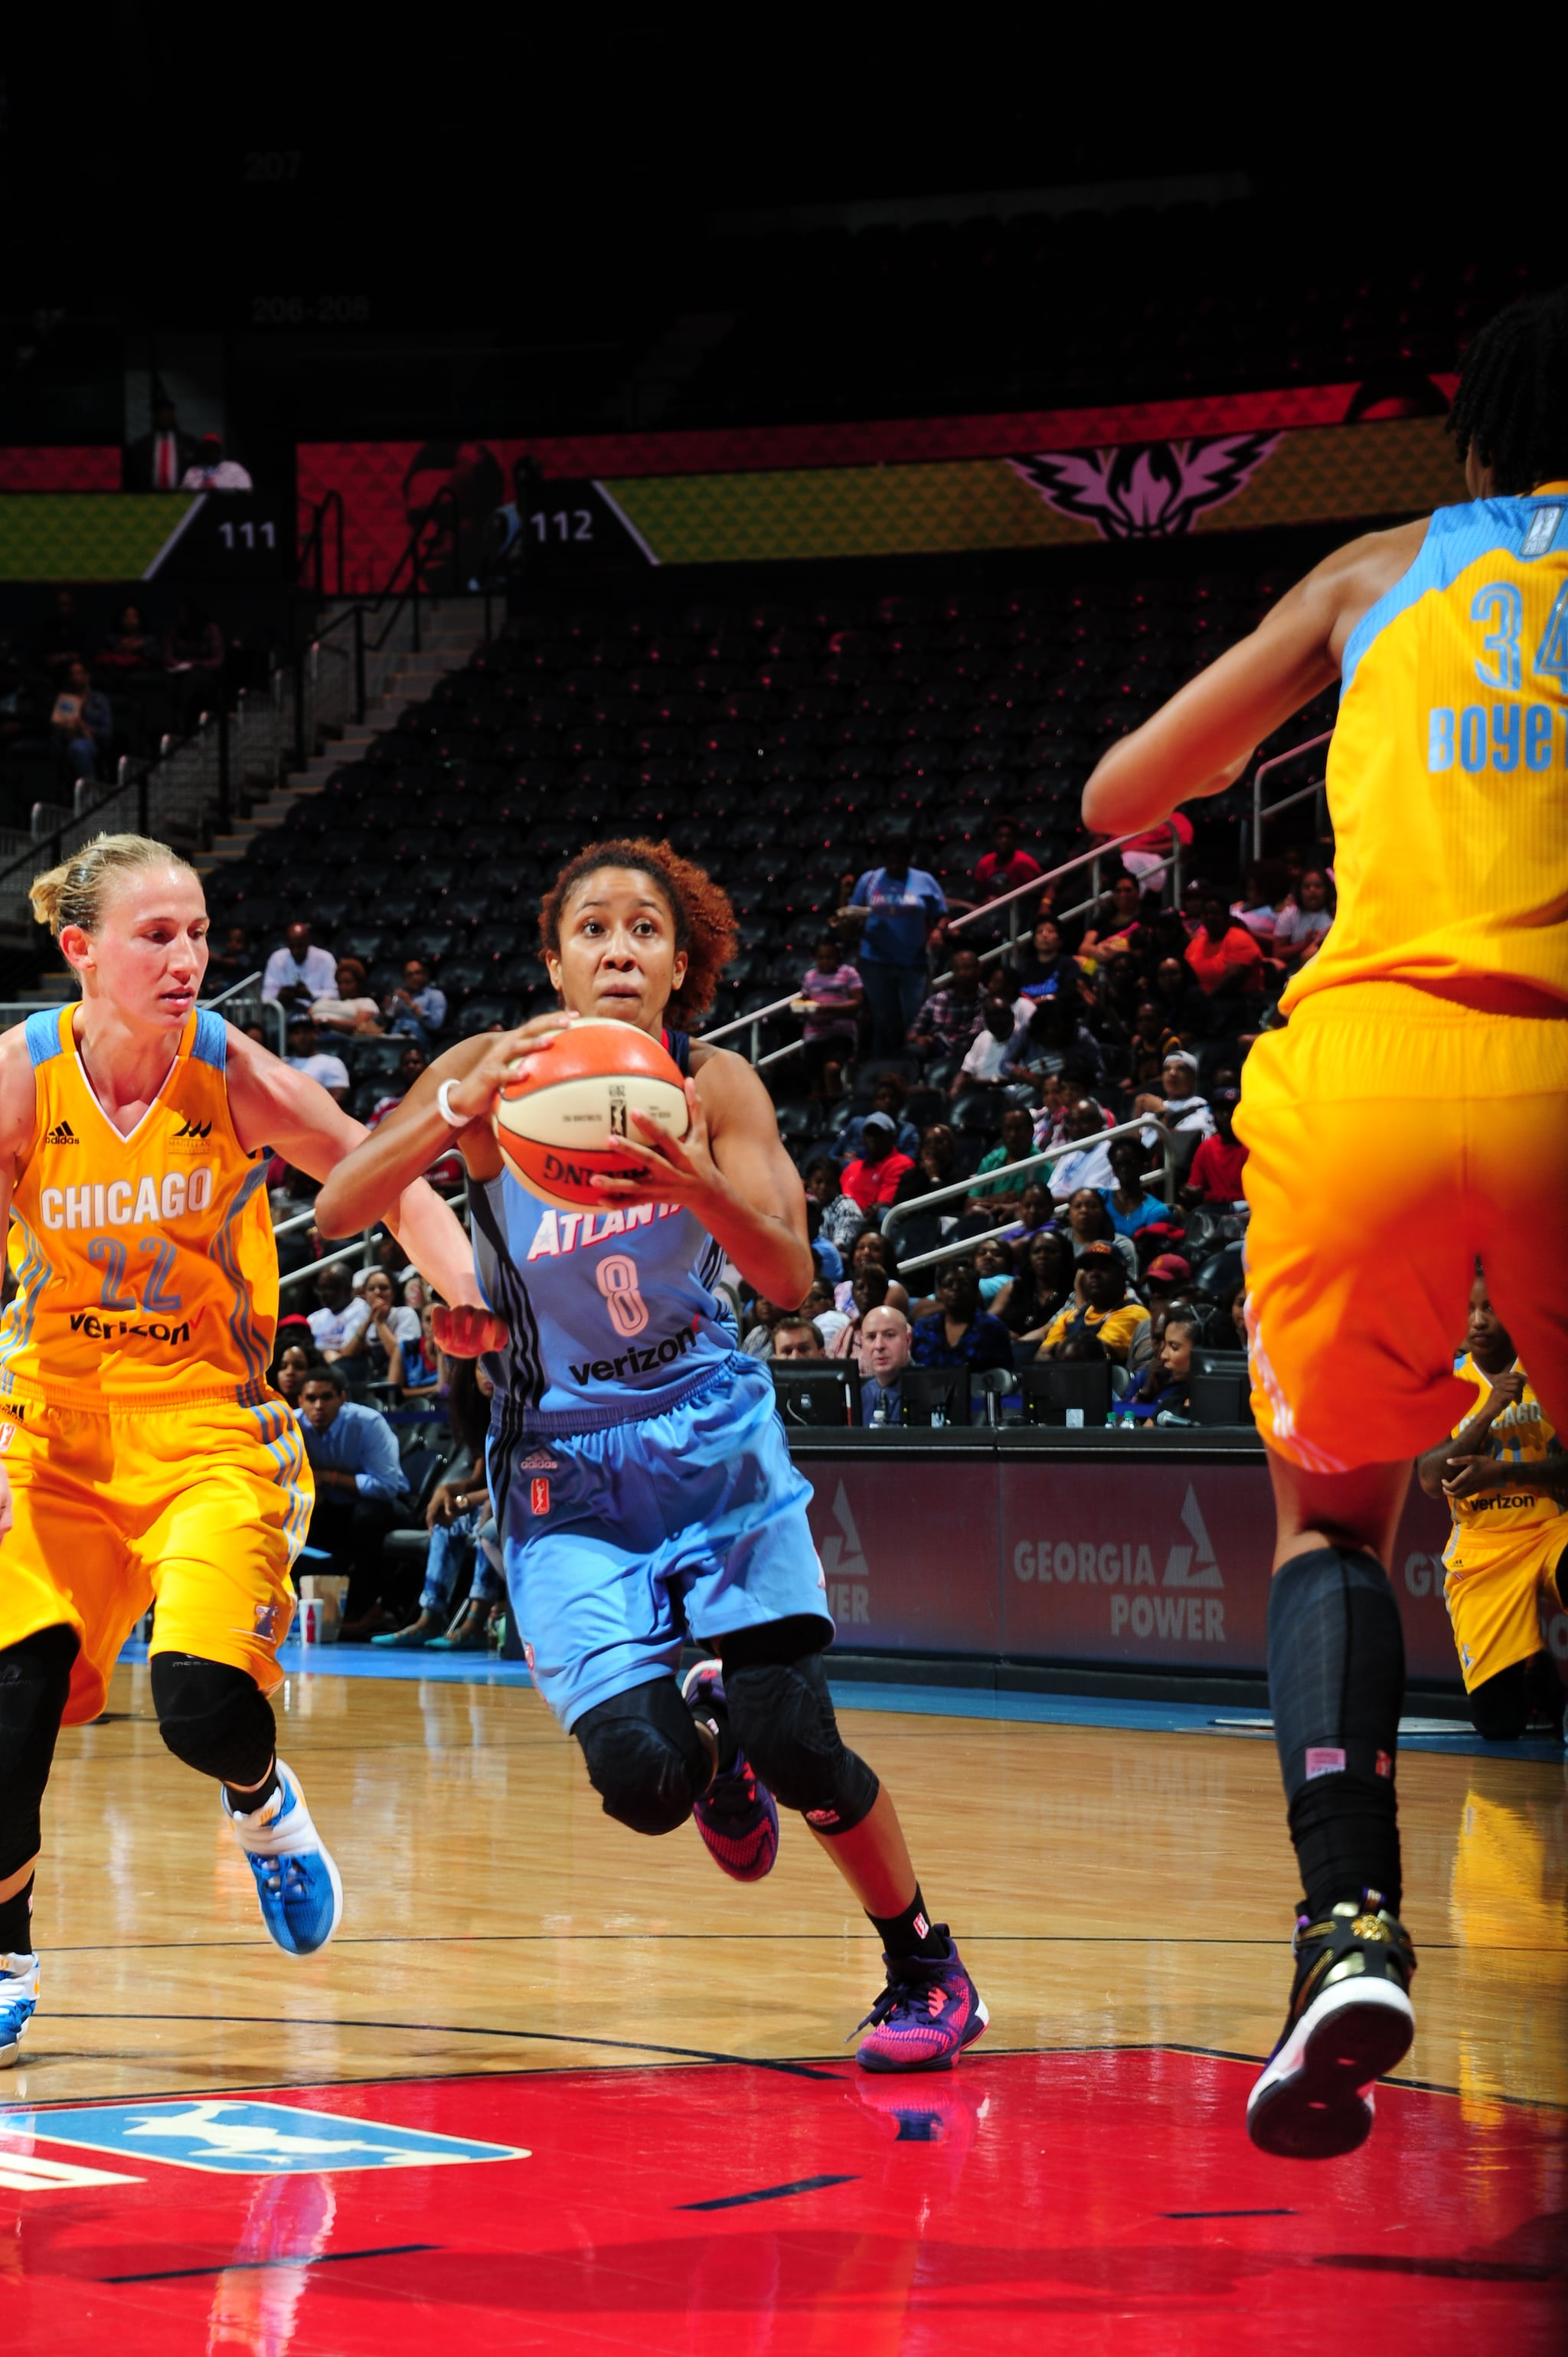 ATLANTA, GA - JUNE 17: Carla Cortijo #8 of the Atlanta Dream drives to the basket against Courtney Vandersloot #22 of the Chicago Sky on June 17, 2016 at Philips Arena in Atlanta, Georgia. NOTE TO USER: User expressly acknowledges and agrees that, by downloading and/or using this Photograph, user is consenting to the terms and conditions of the Getty Images License Agreement. Mandatory Copyright Notice: Copyright 2016 NBAE (Photo by Scott Cunningham/NBAE via Getty Images)